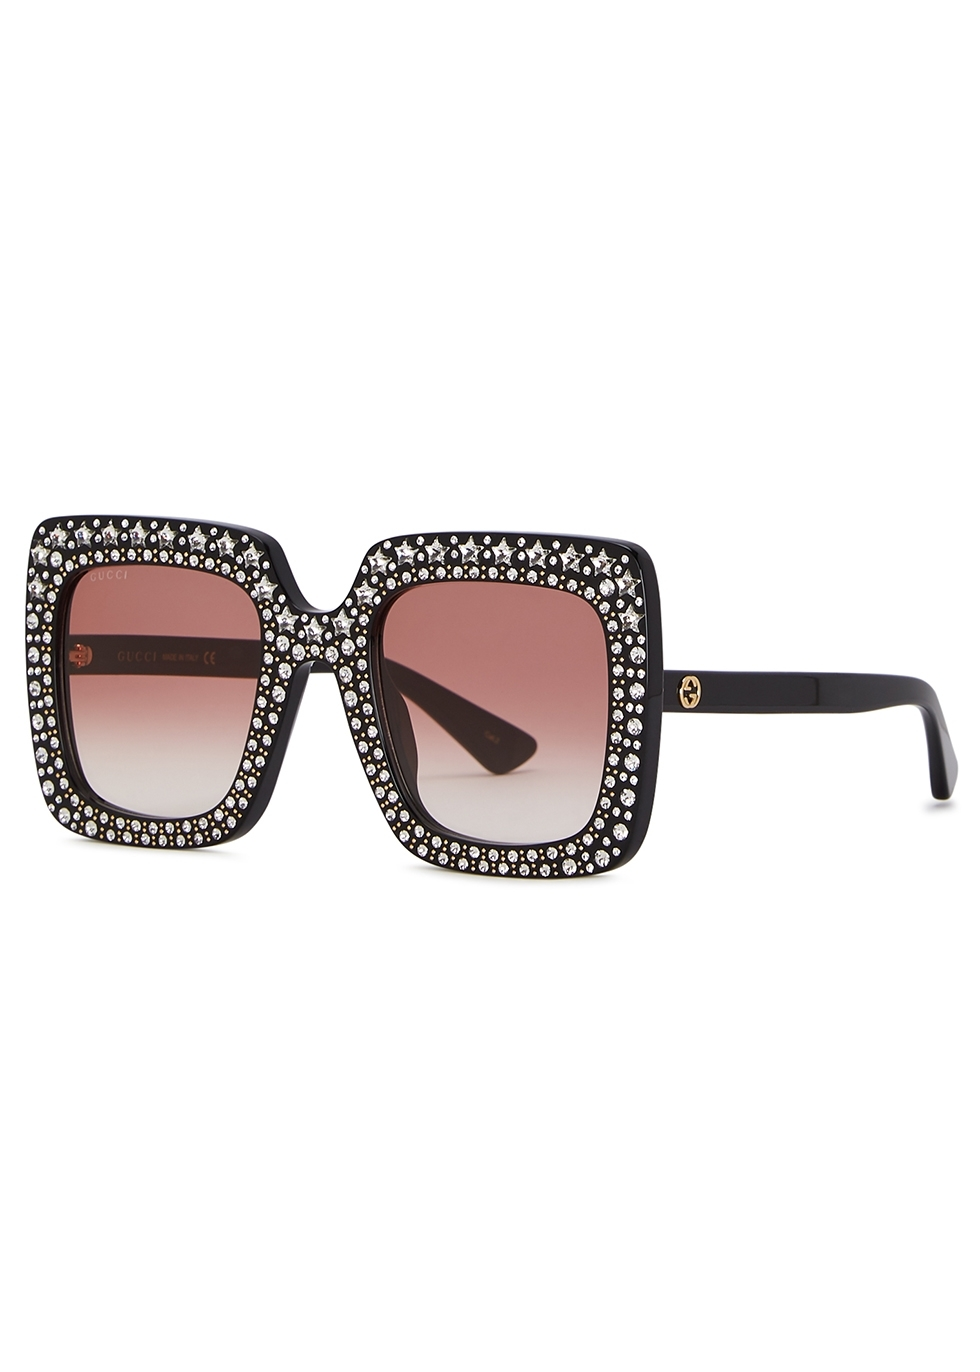 47a5c6a51 Gucci Women's Sunglasses - Harvey Nichols